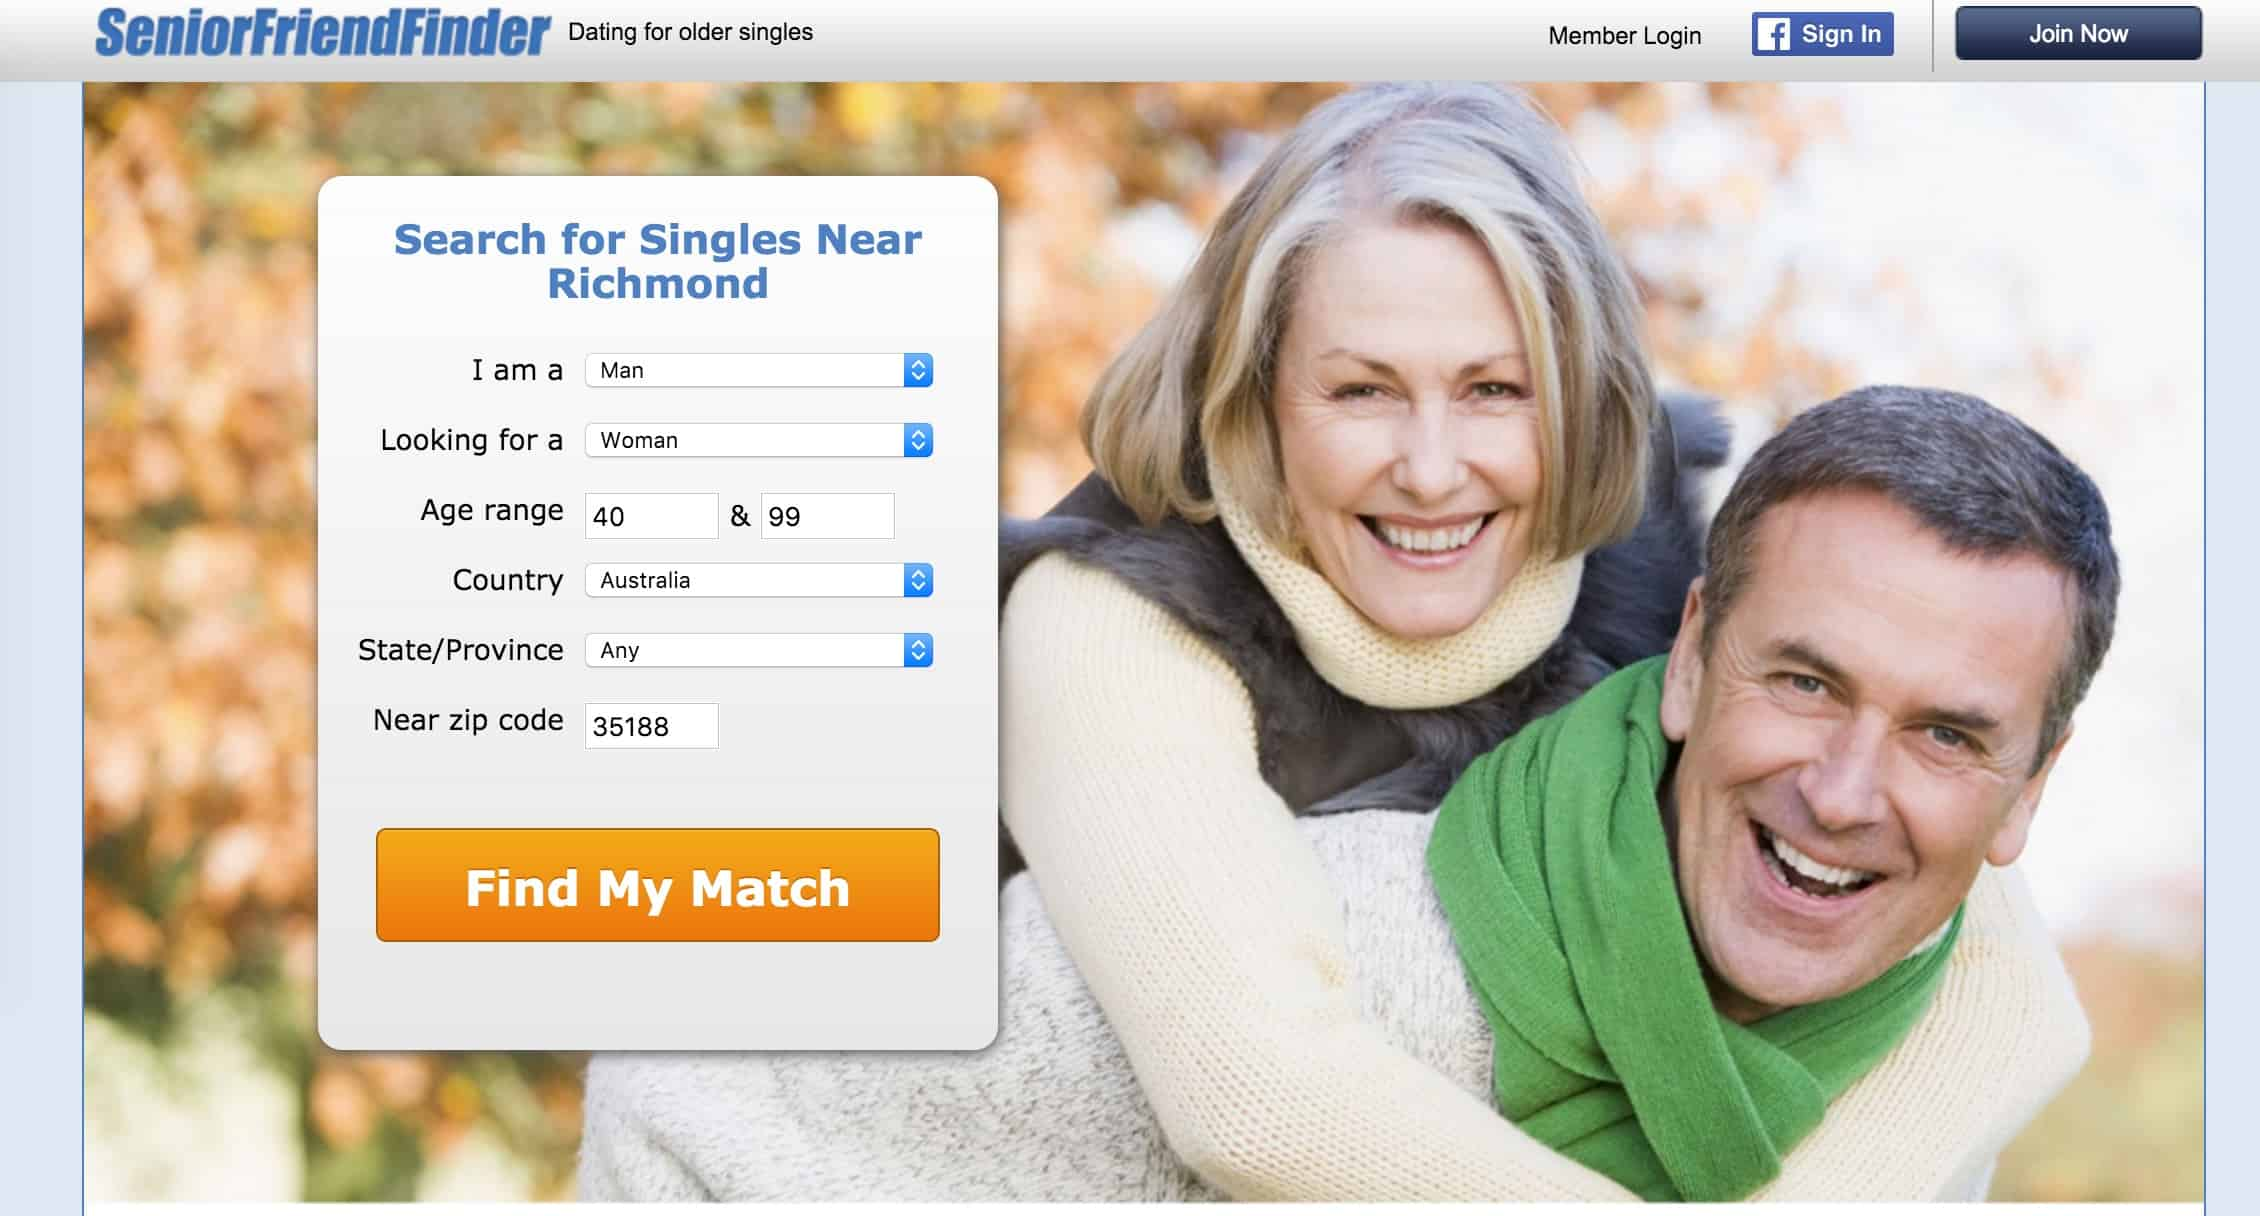 ruby senior dating site People want to be happy with their soul mates at any age senior online dating is your chance to meet your destiny without leaving your house dating in 40s and 50s can be challenging but meeting women online is safe and convenient if you are not interested in dating younger women, there are senior dating sites designed just for you.